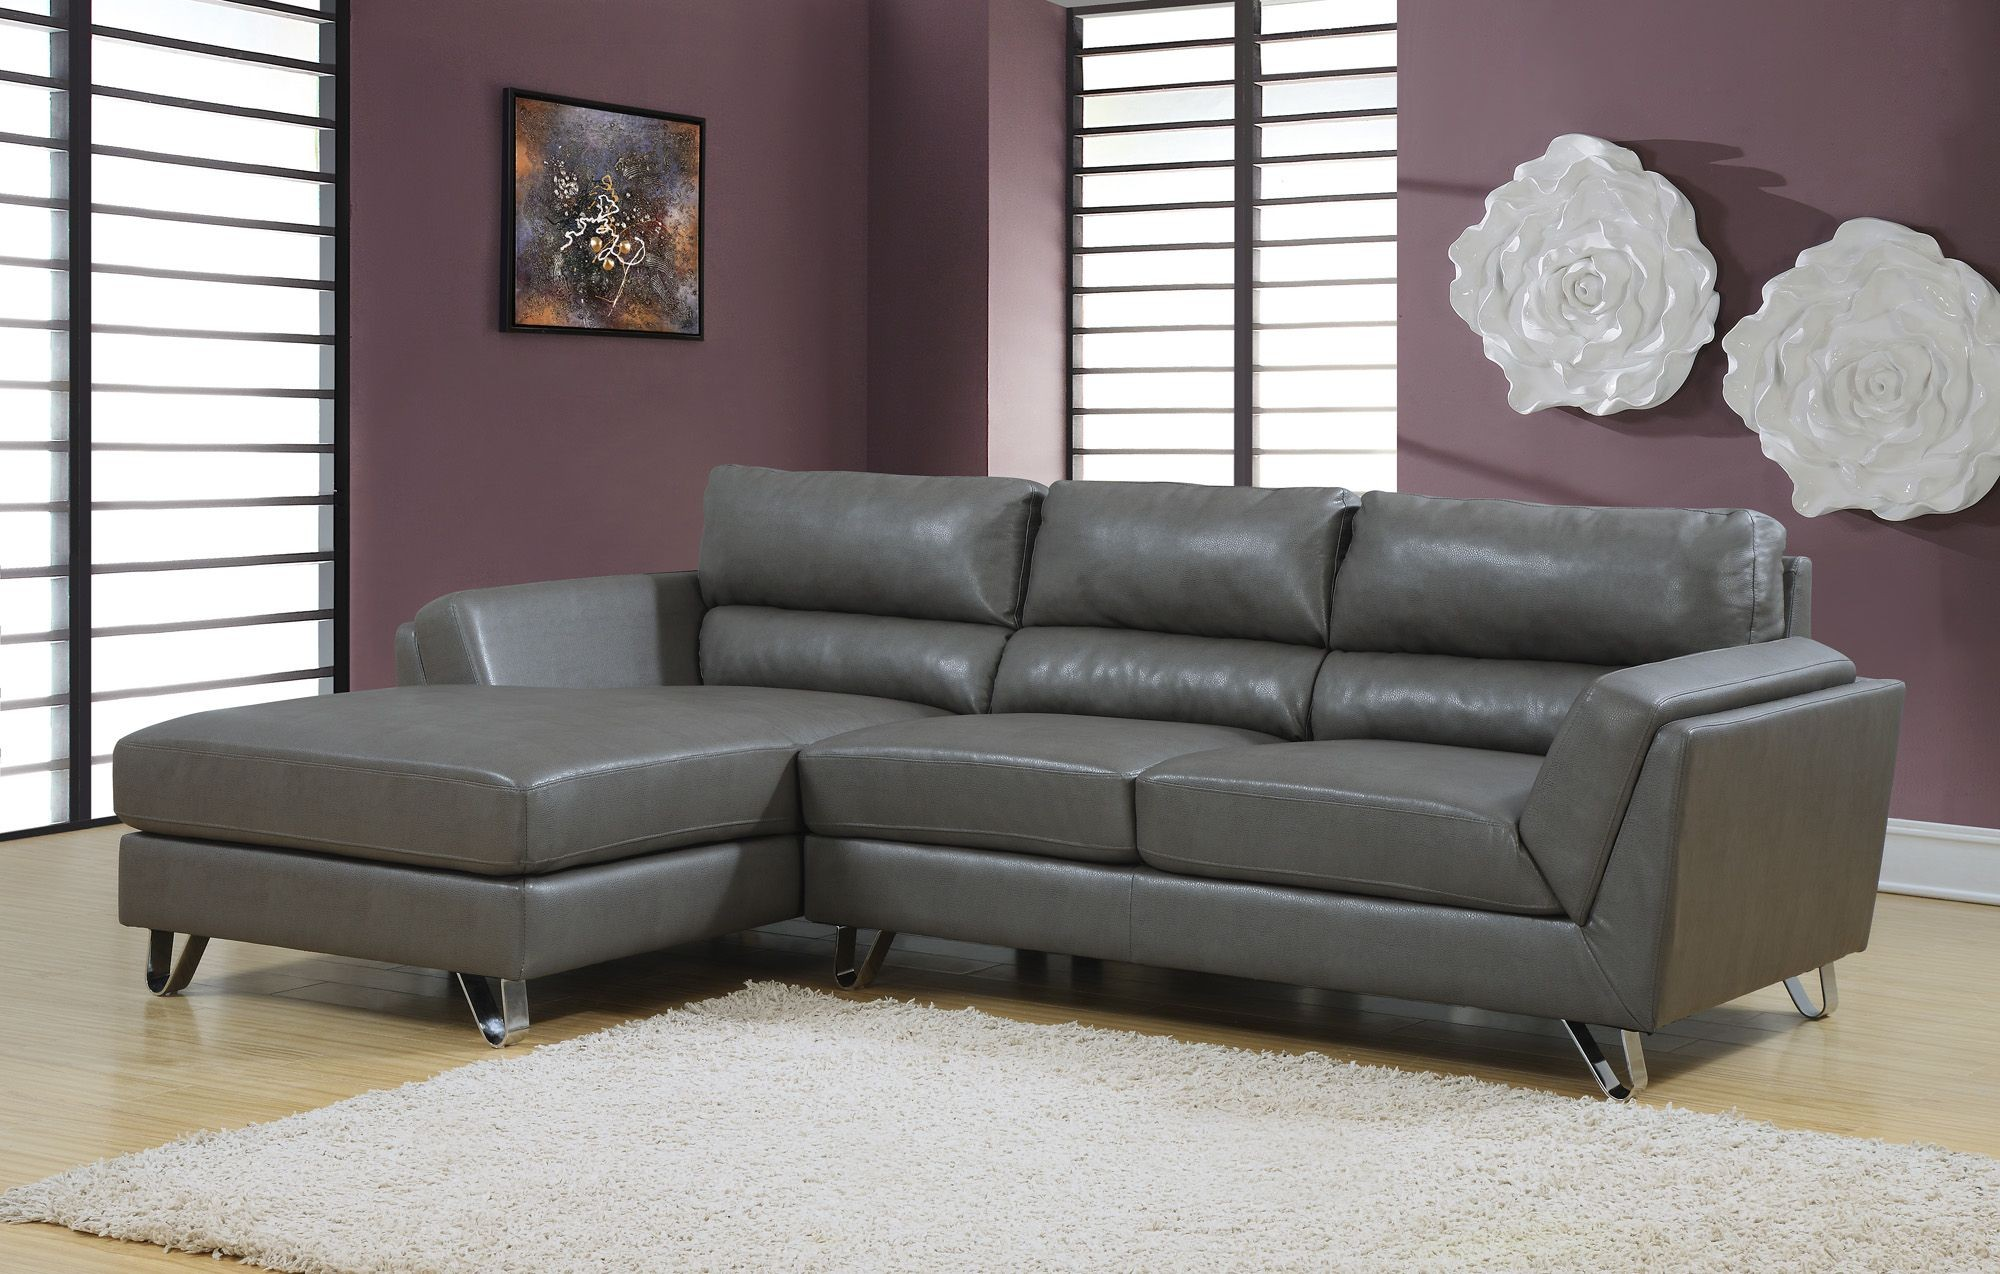 Charcoal gray match sofa sectional from monarch 8210gy for Sofa sectionnel en liquidation